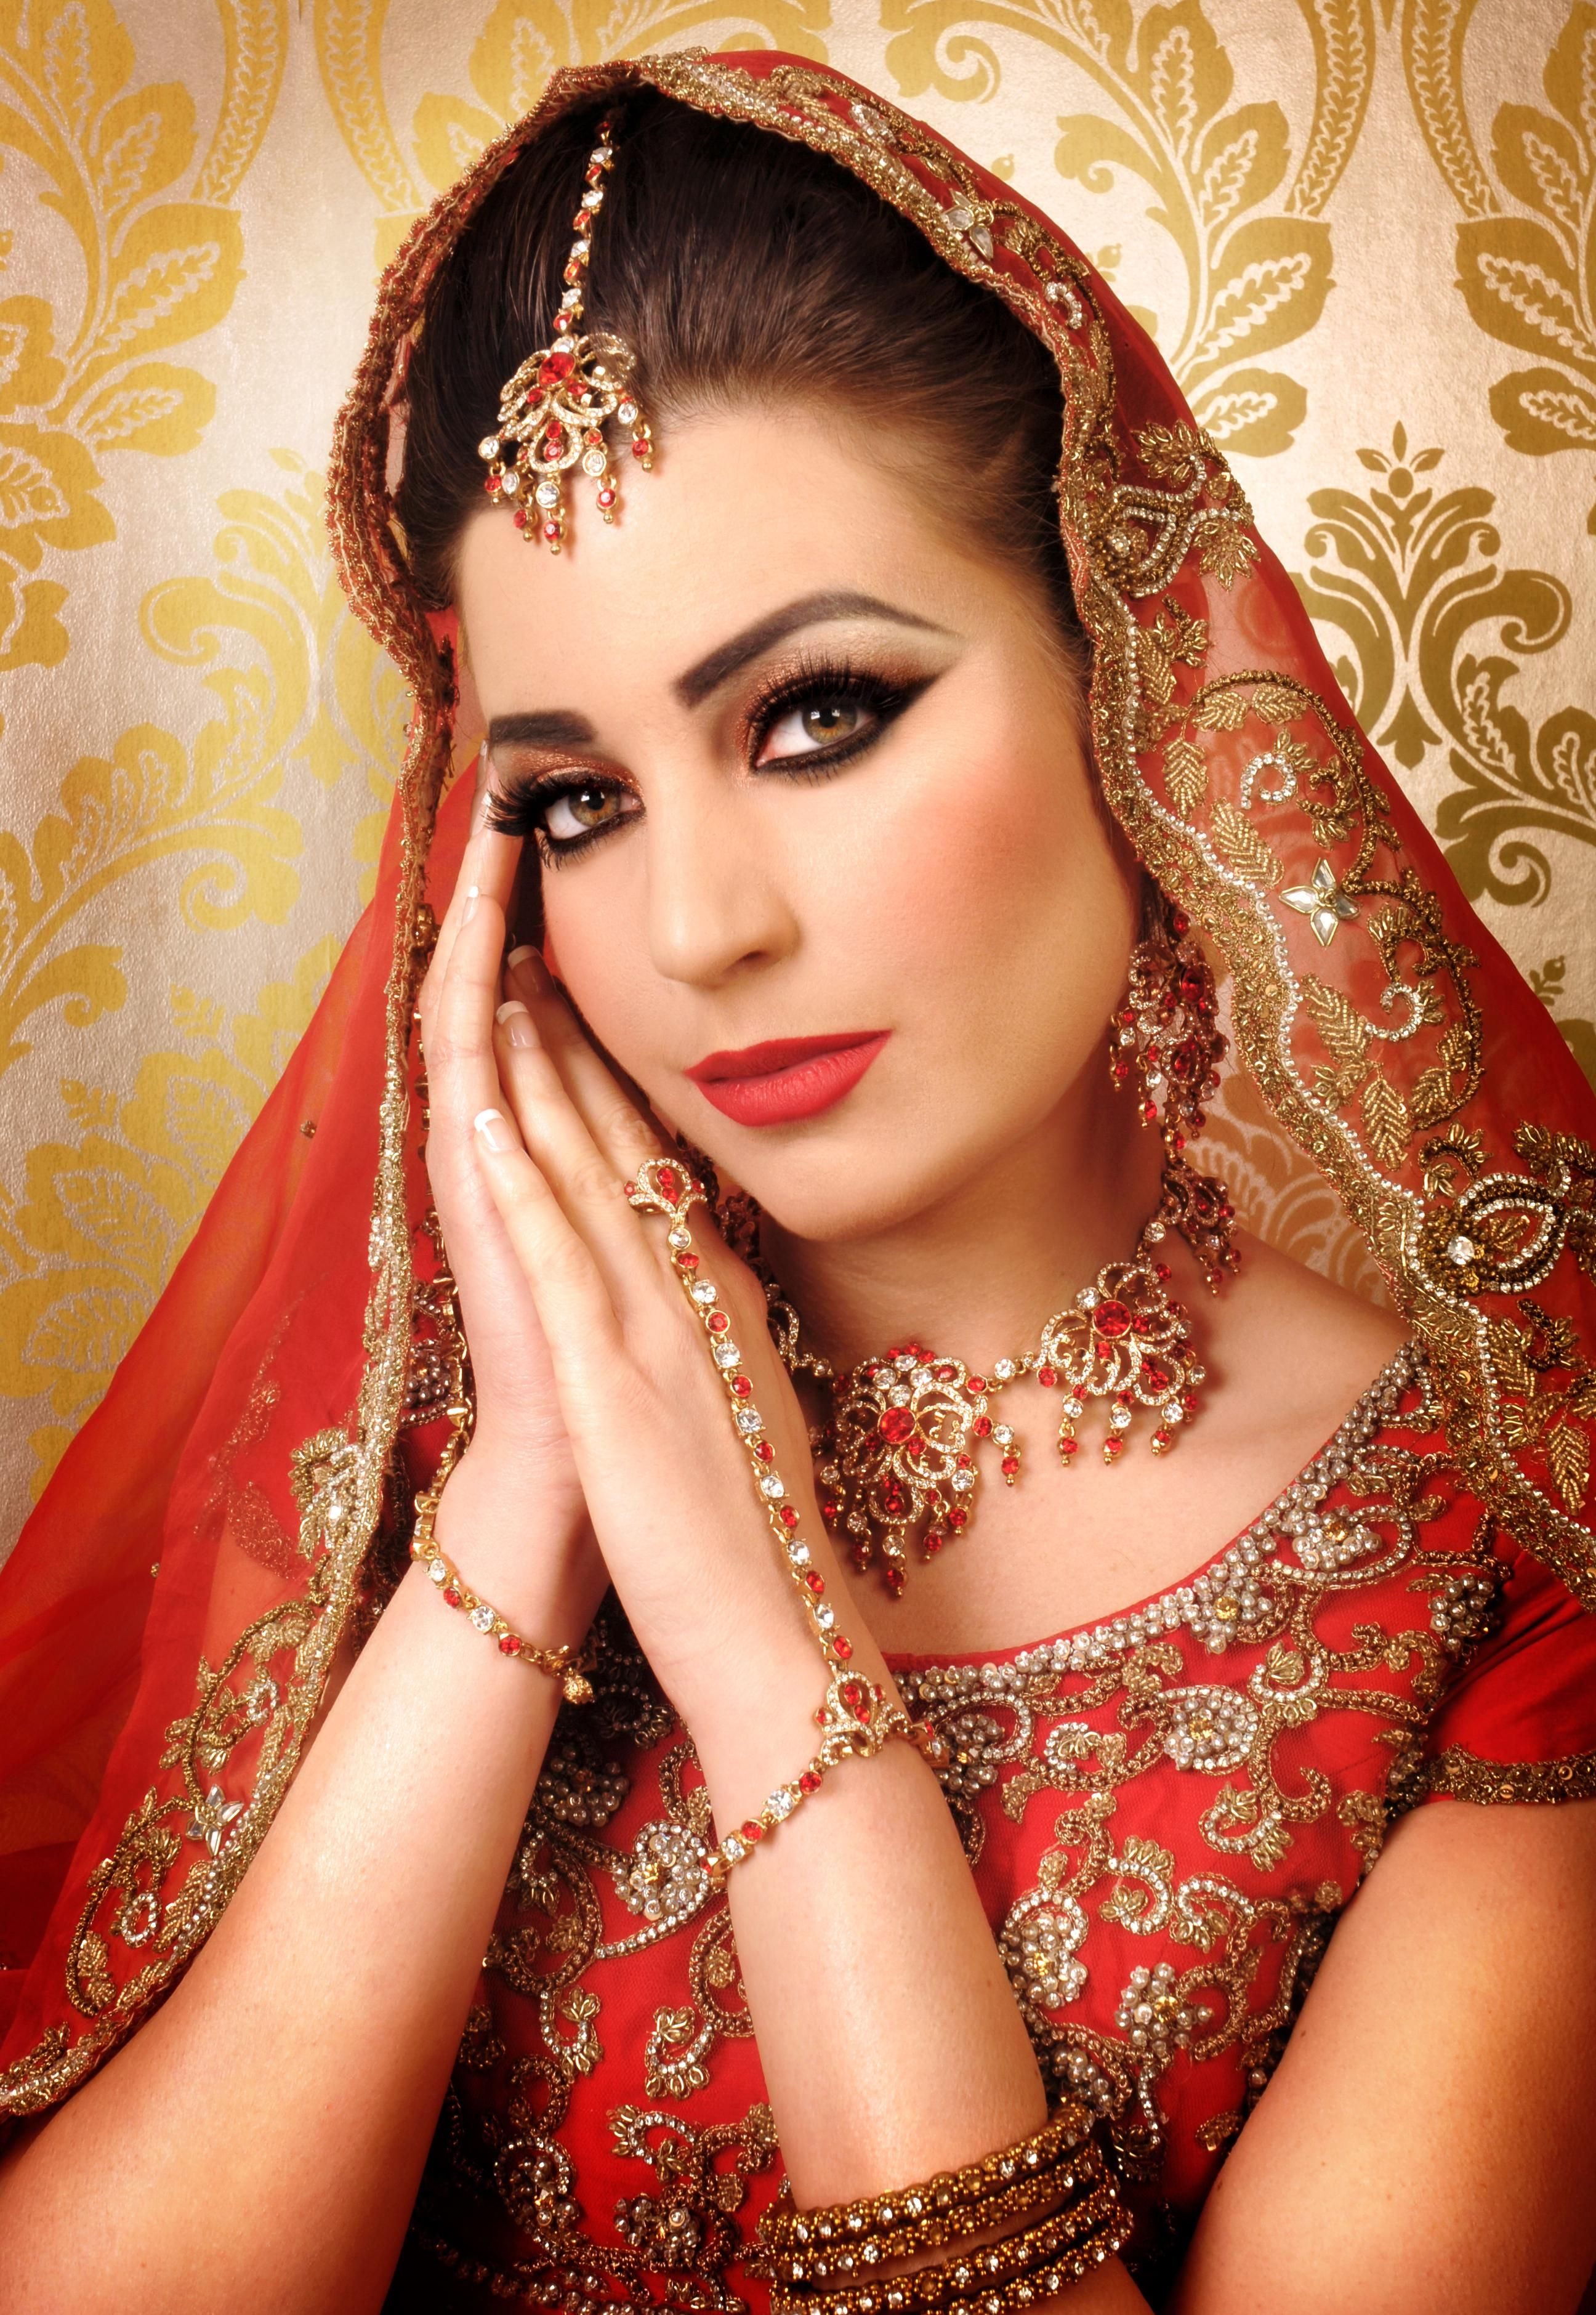 asian brides AsianBrideLondon.jpg Indian beauty